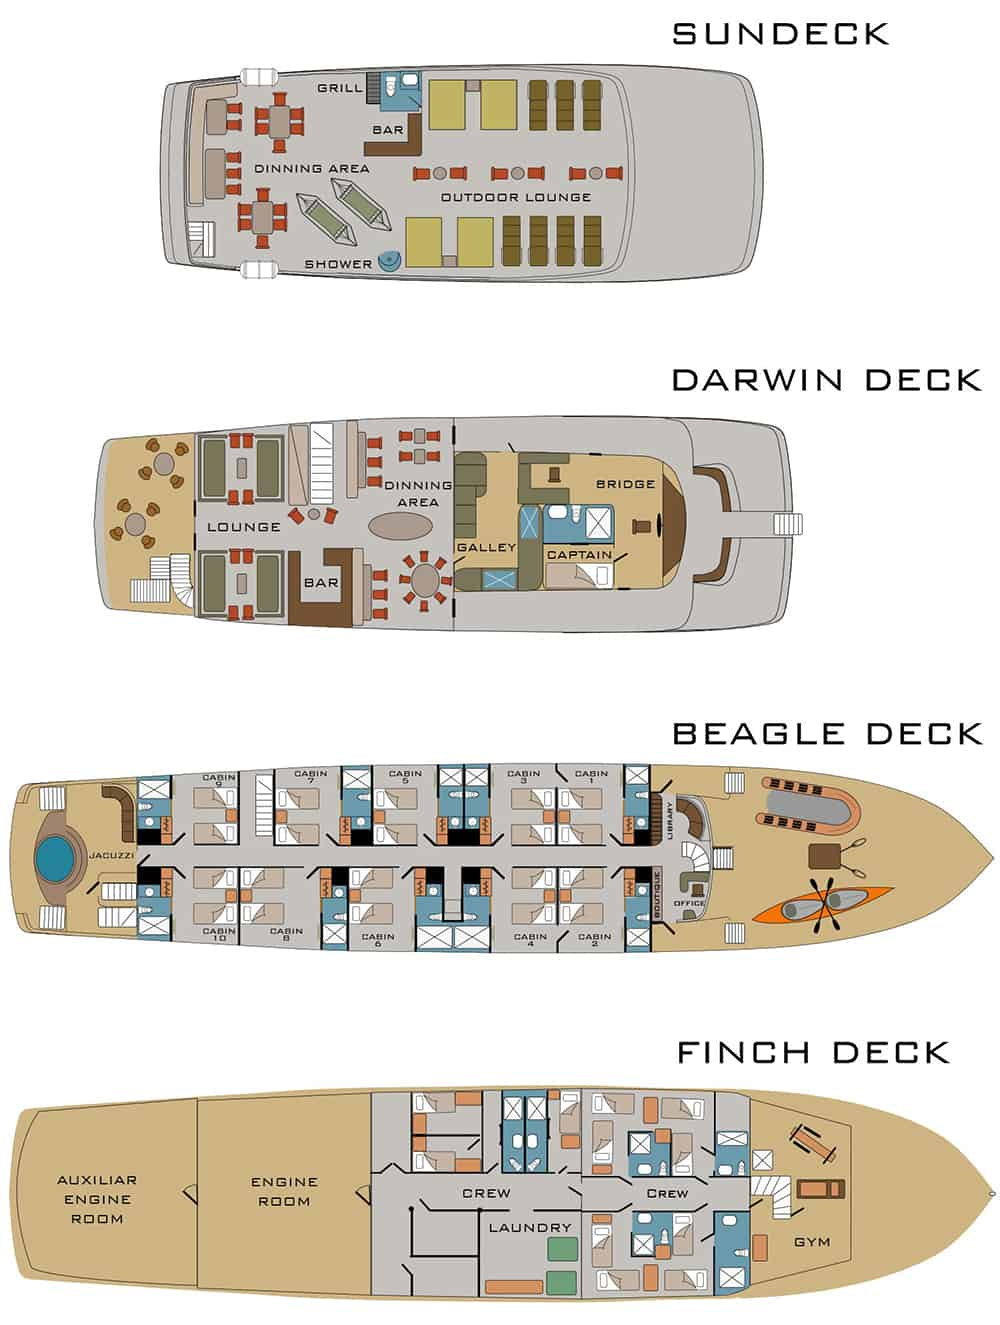 origin small ship deck plan showing multiple levels of the boat